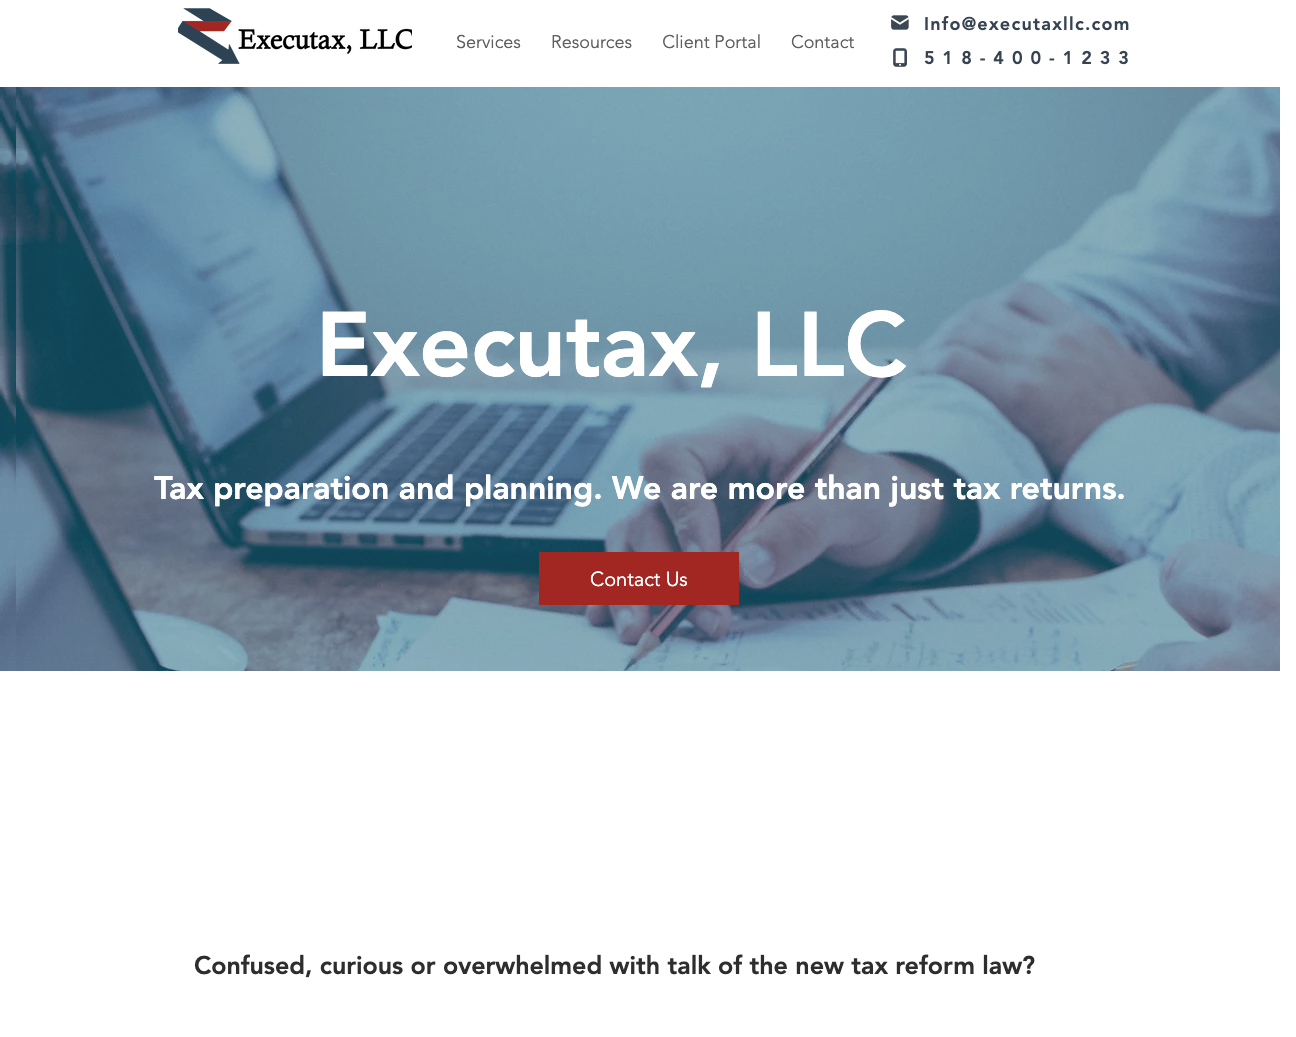 Executax, LLC - Web design, content creation